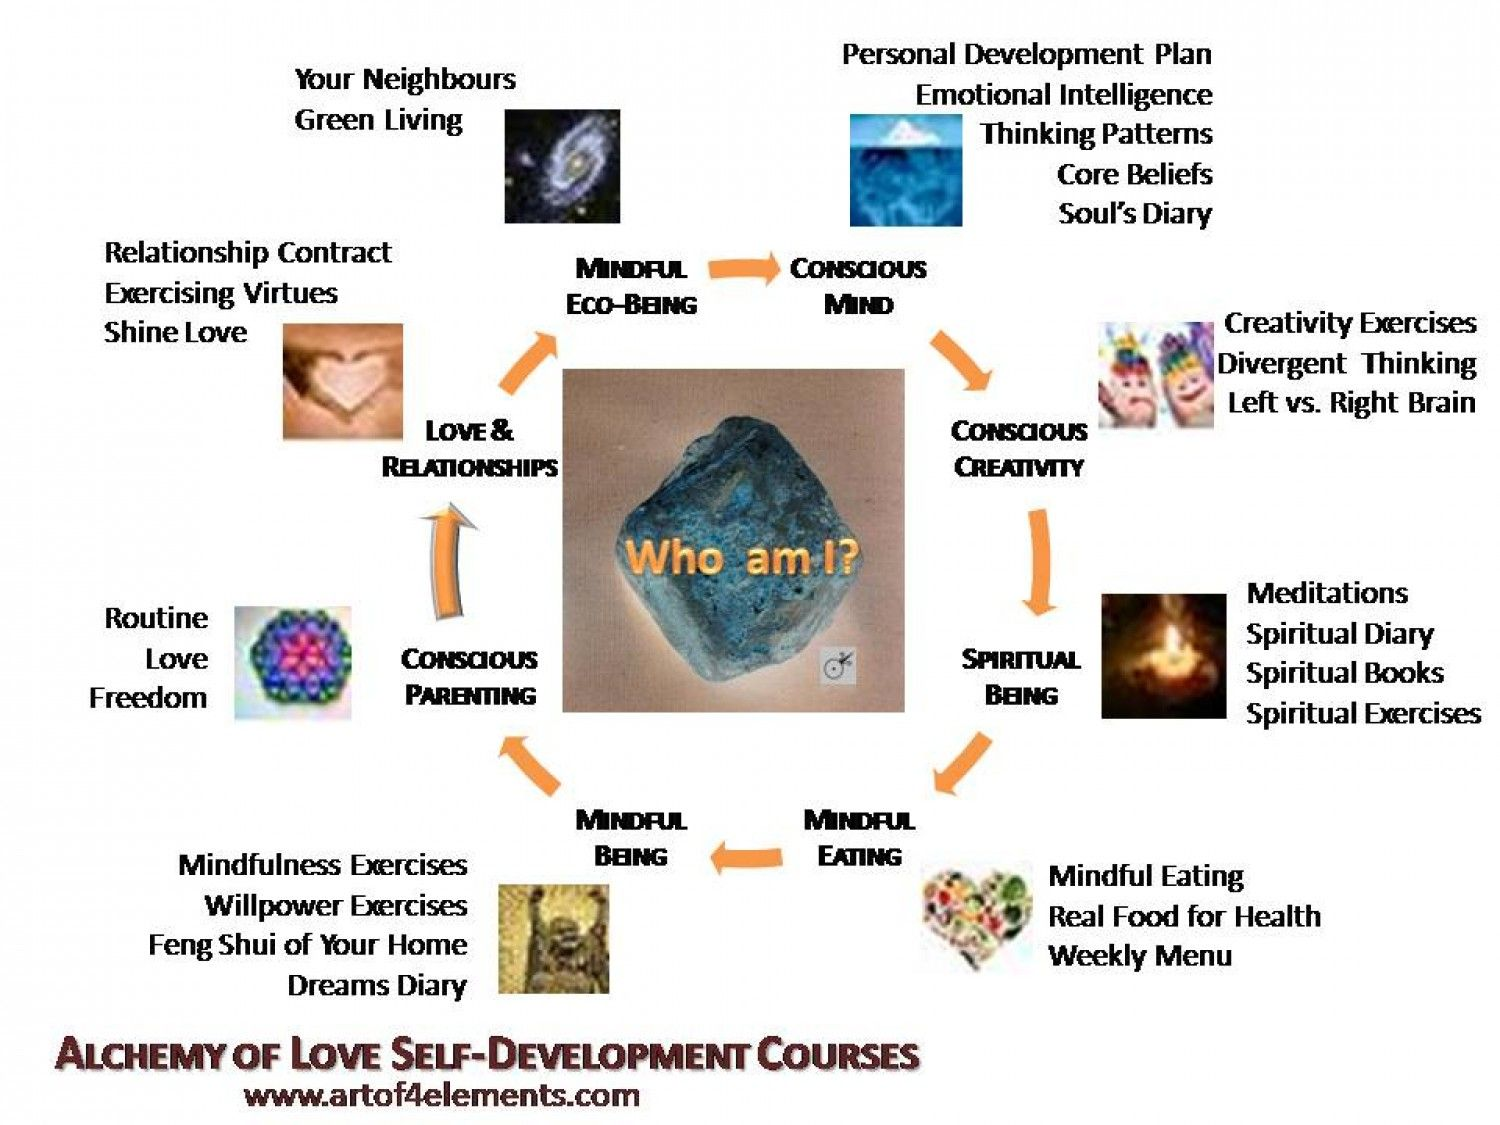 How to live your highest potential. Alchemy of love mindfulness training